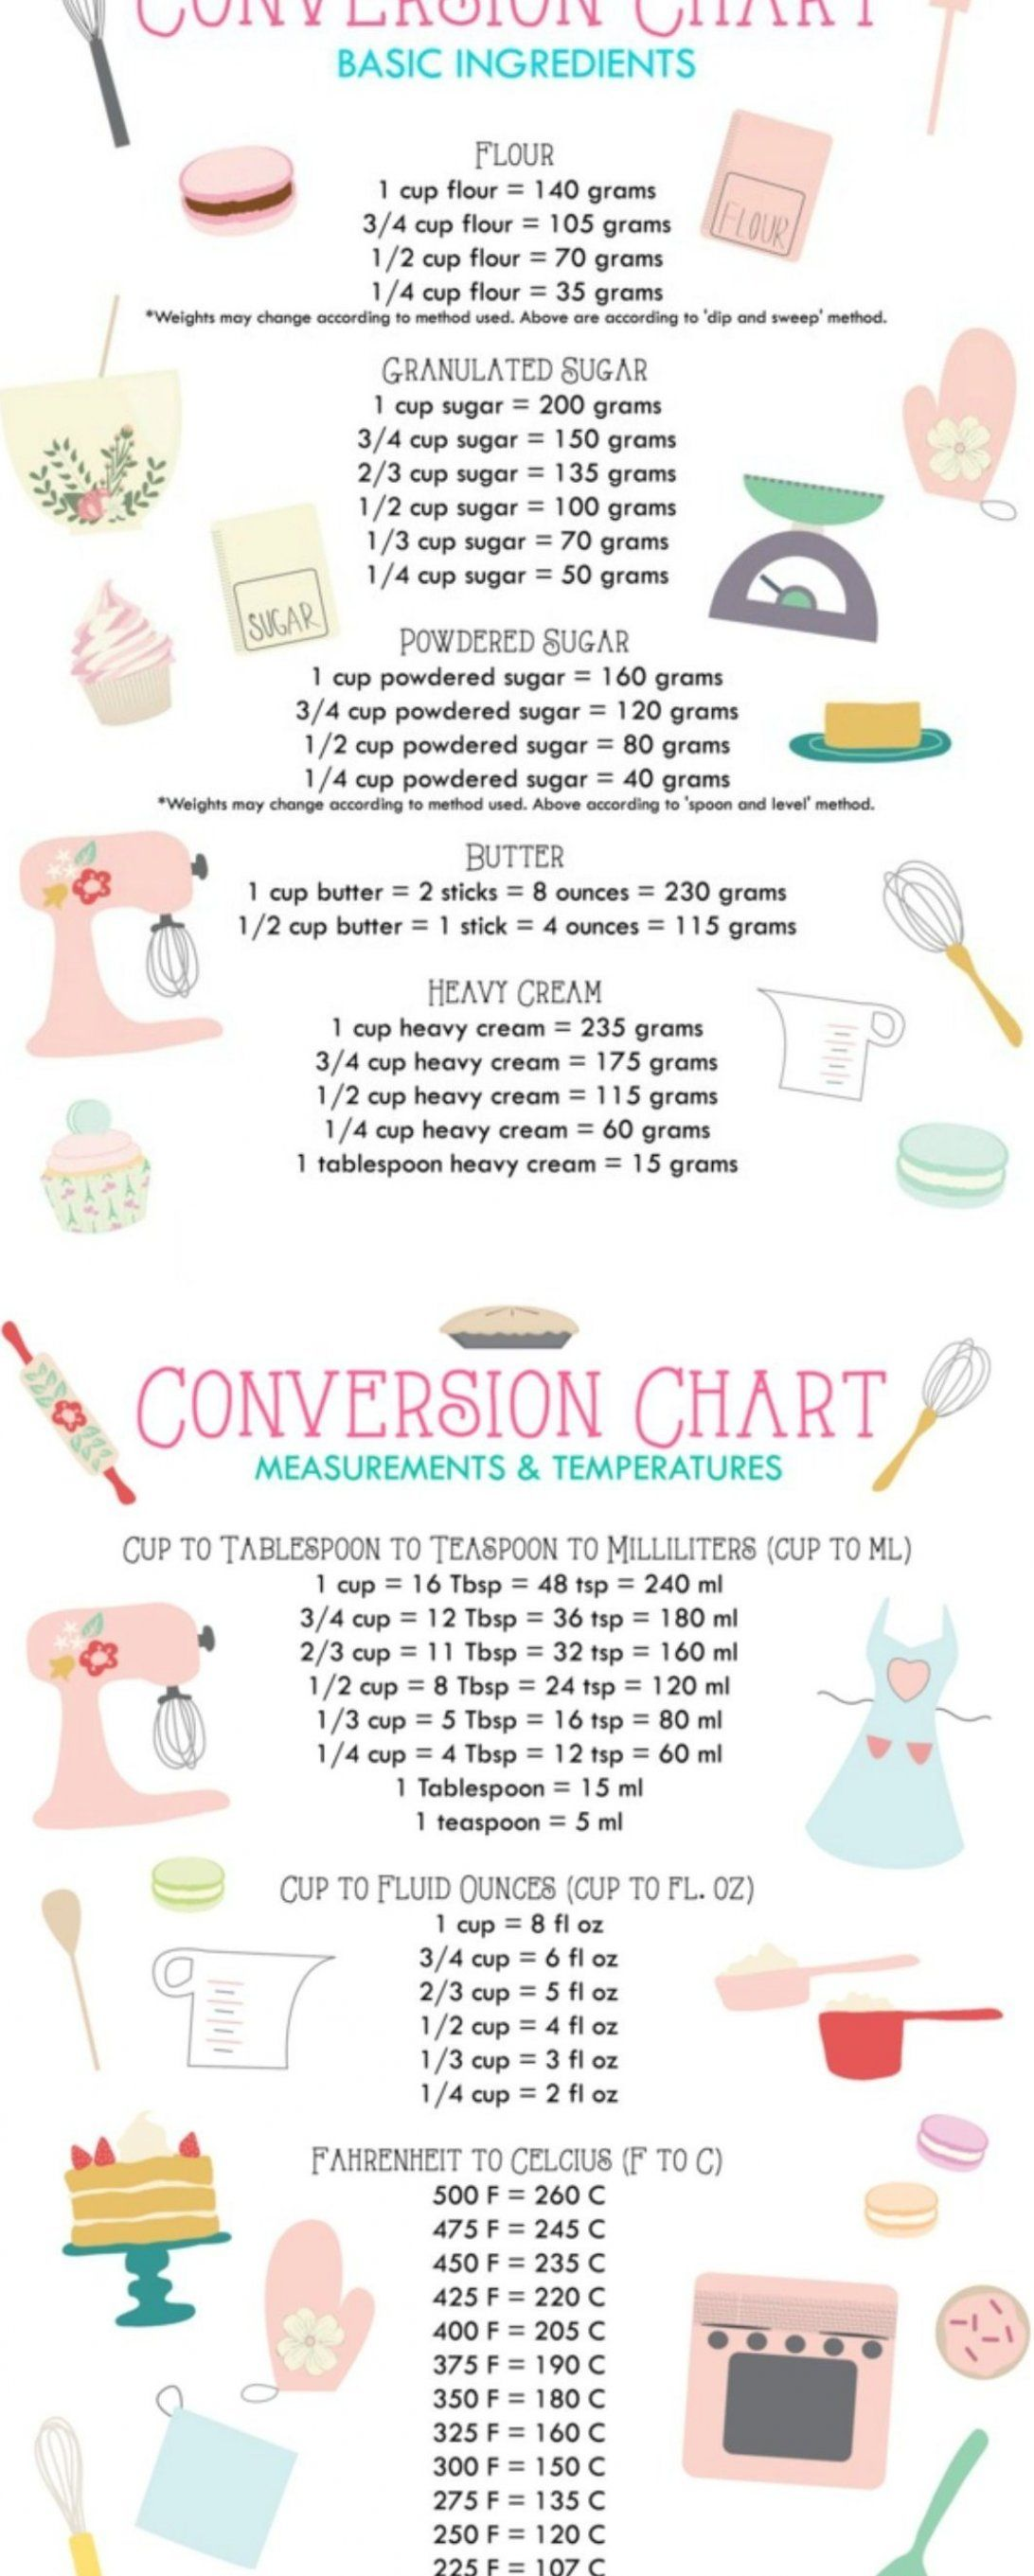 10 Cooking Tips And Hacks To Make Your Life Easier Cookingtips Cookingtipsideas Cookingblogidea In 2020 Cooking Measurements Baking Measurements Cooking Conversions